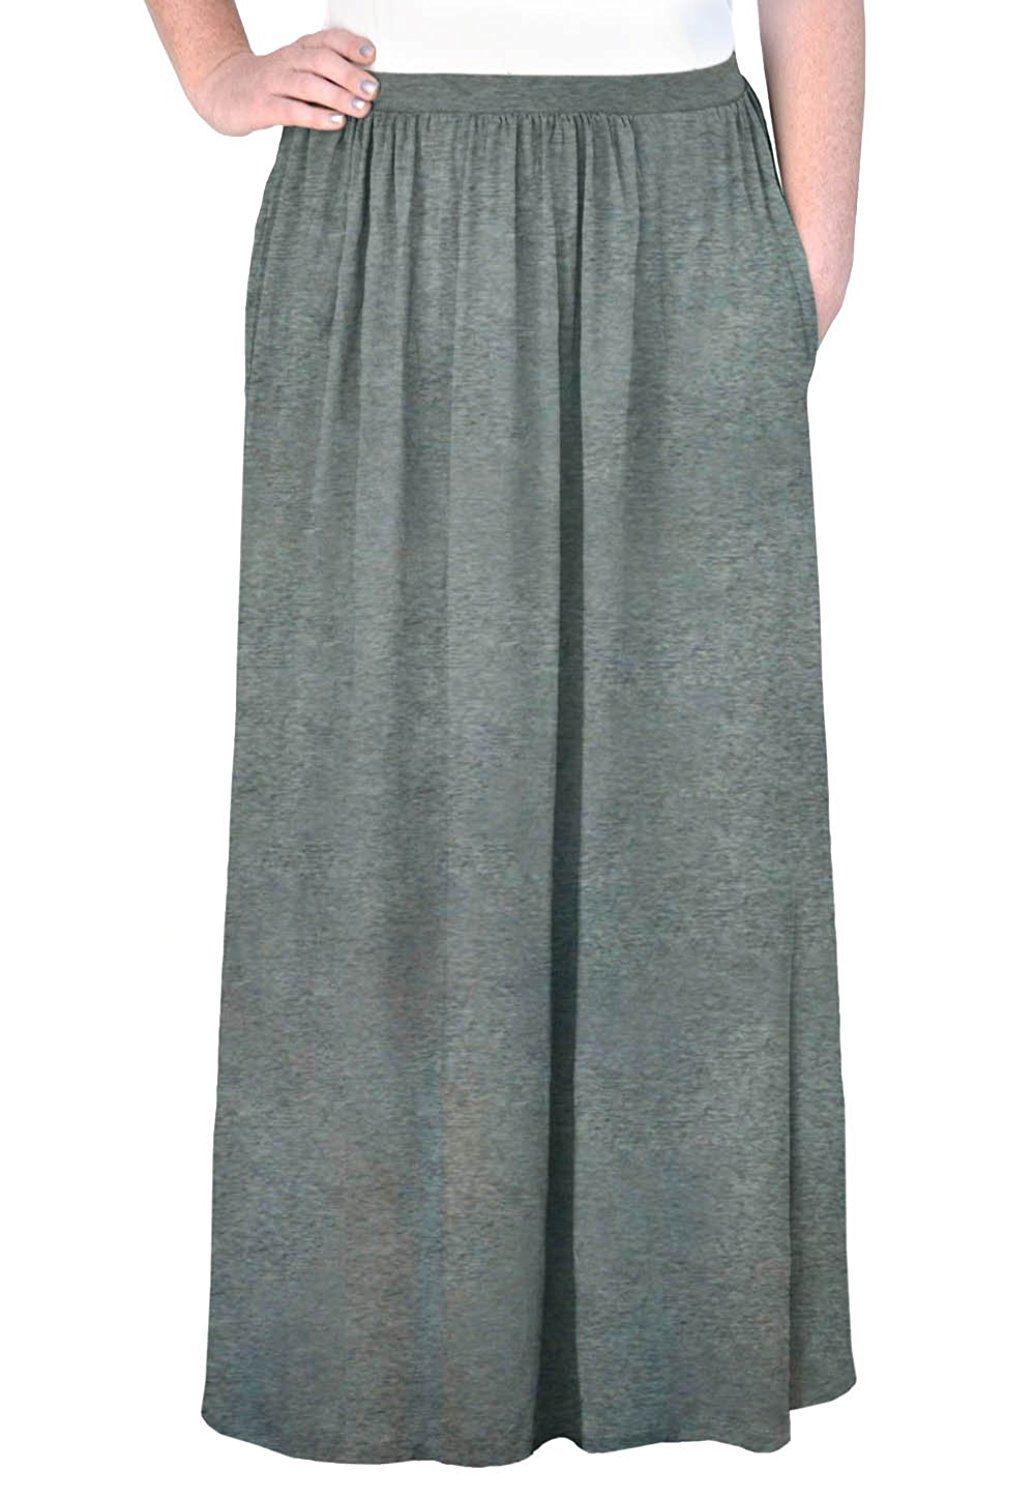 9279e0c479f4 Kosher Casual Women's Modest Long Flowing Skirt With Pockets >>> This is an  Amazon Affiliate link. Click image to review more details.